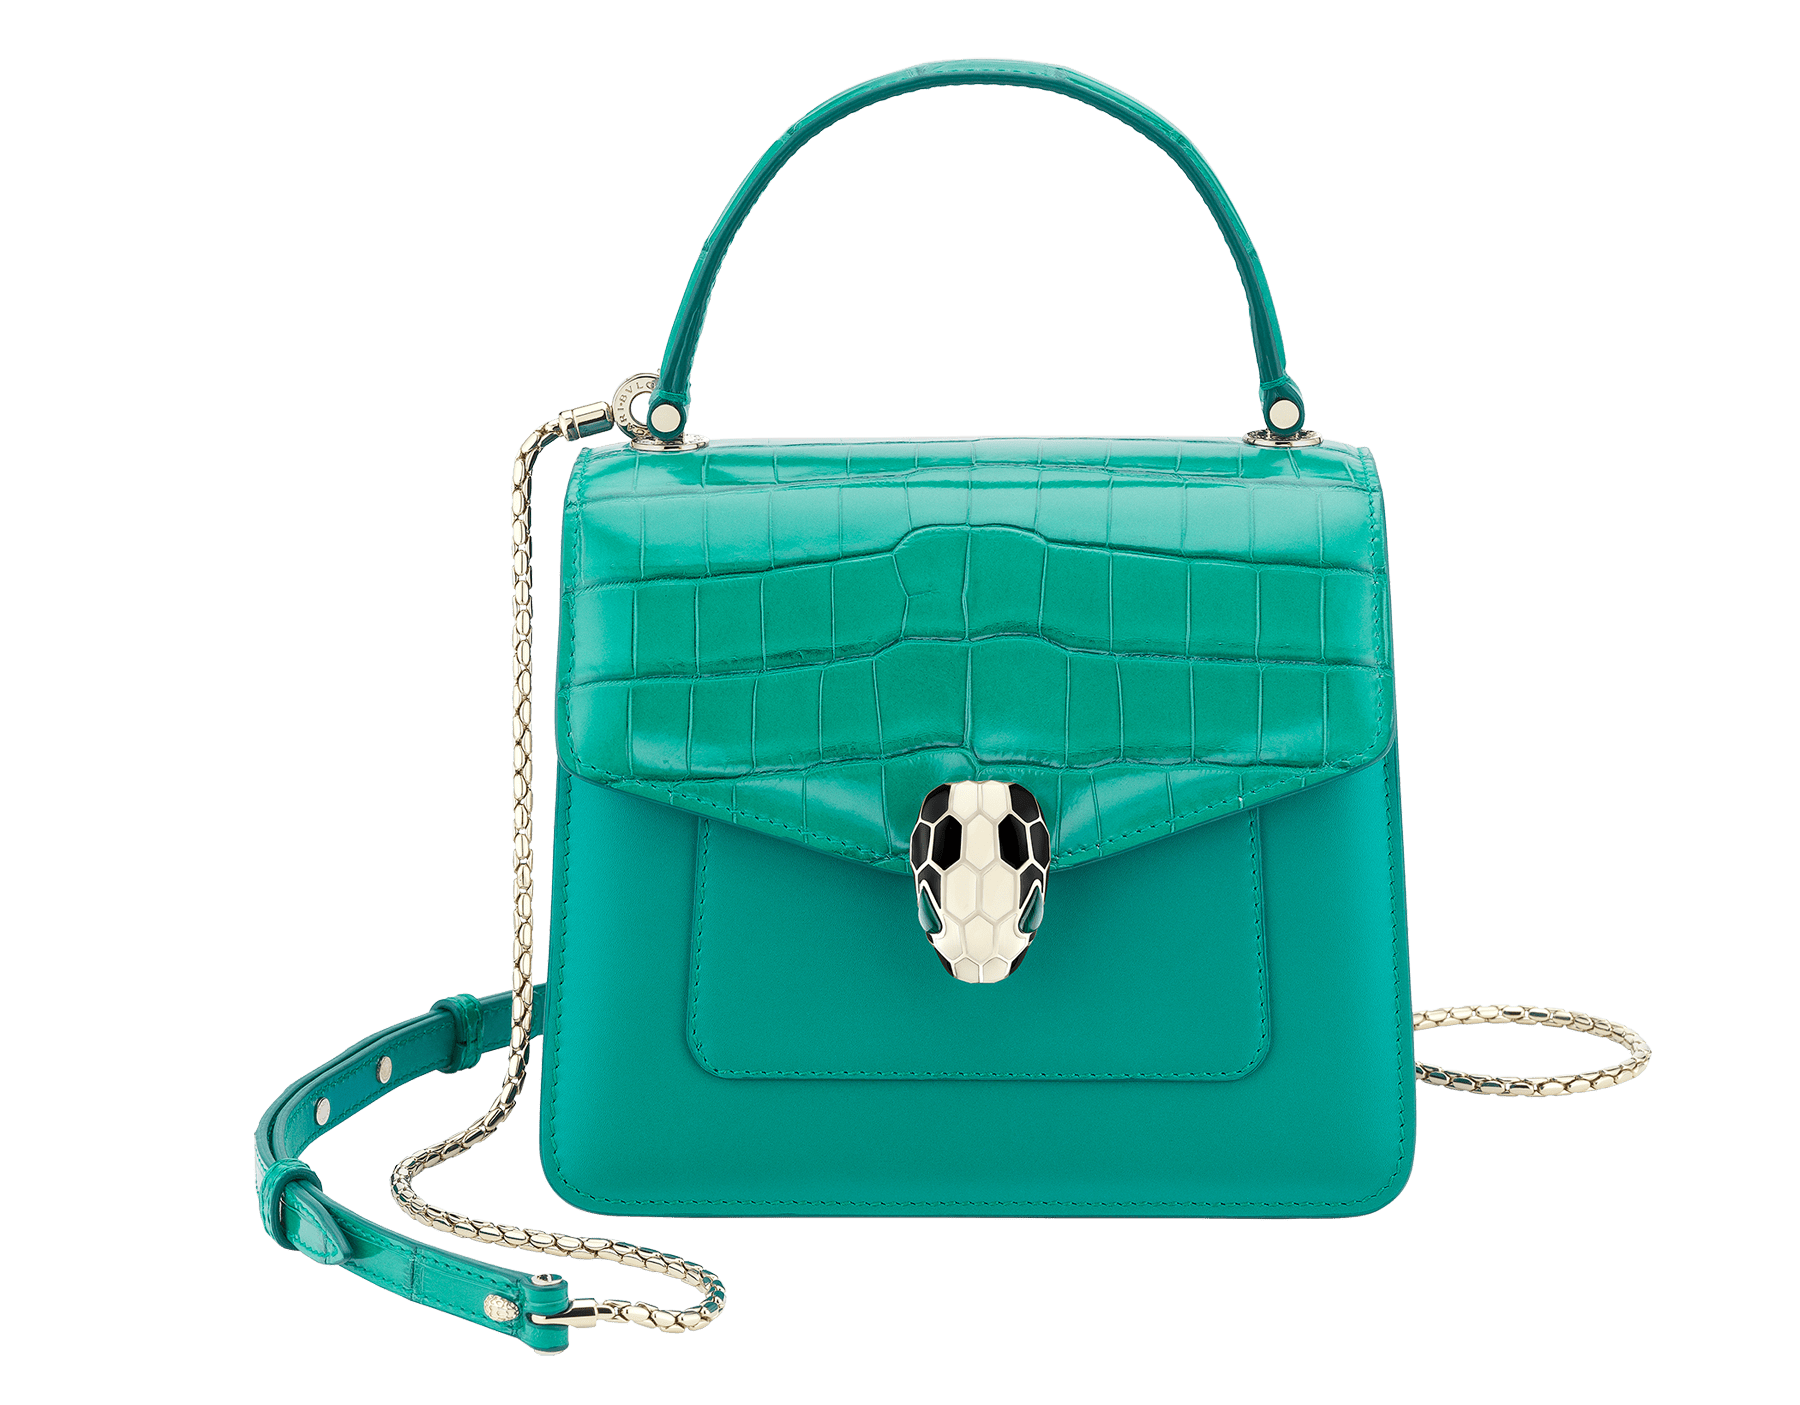 Serpenti Forever crossbody bag in tropical turquoise shiny croco skin and smooth calf leather. Snakehead closure in light gold plated brass decorated with black and white enamel, and green malachite eyes. 288492 image 1